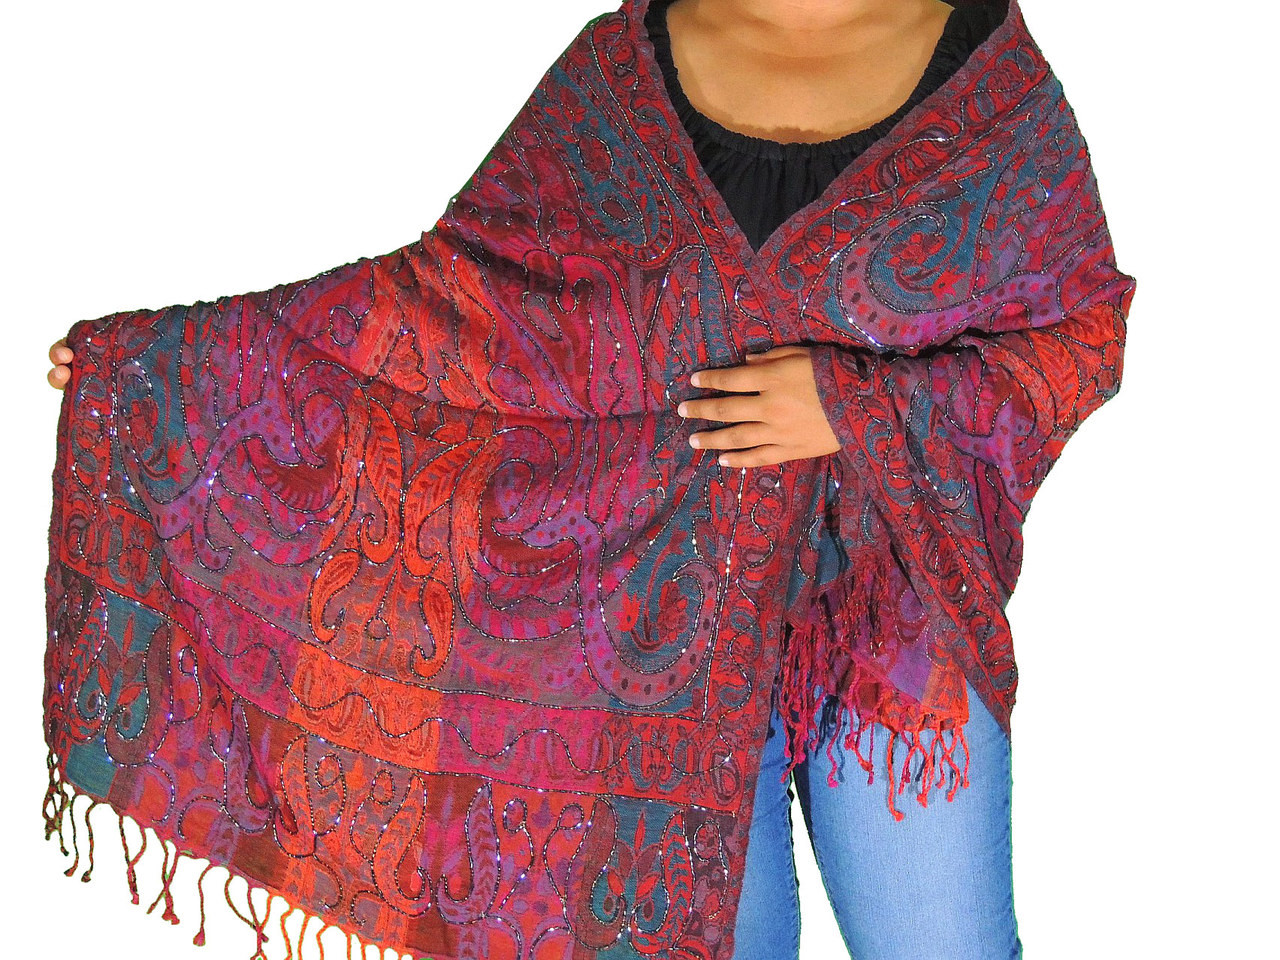 9b56d427489d2 Boho Beaded Wool Dressy Shawl Wrap - Paisley Kashmir Ladies Evening ...